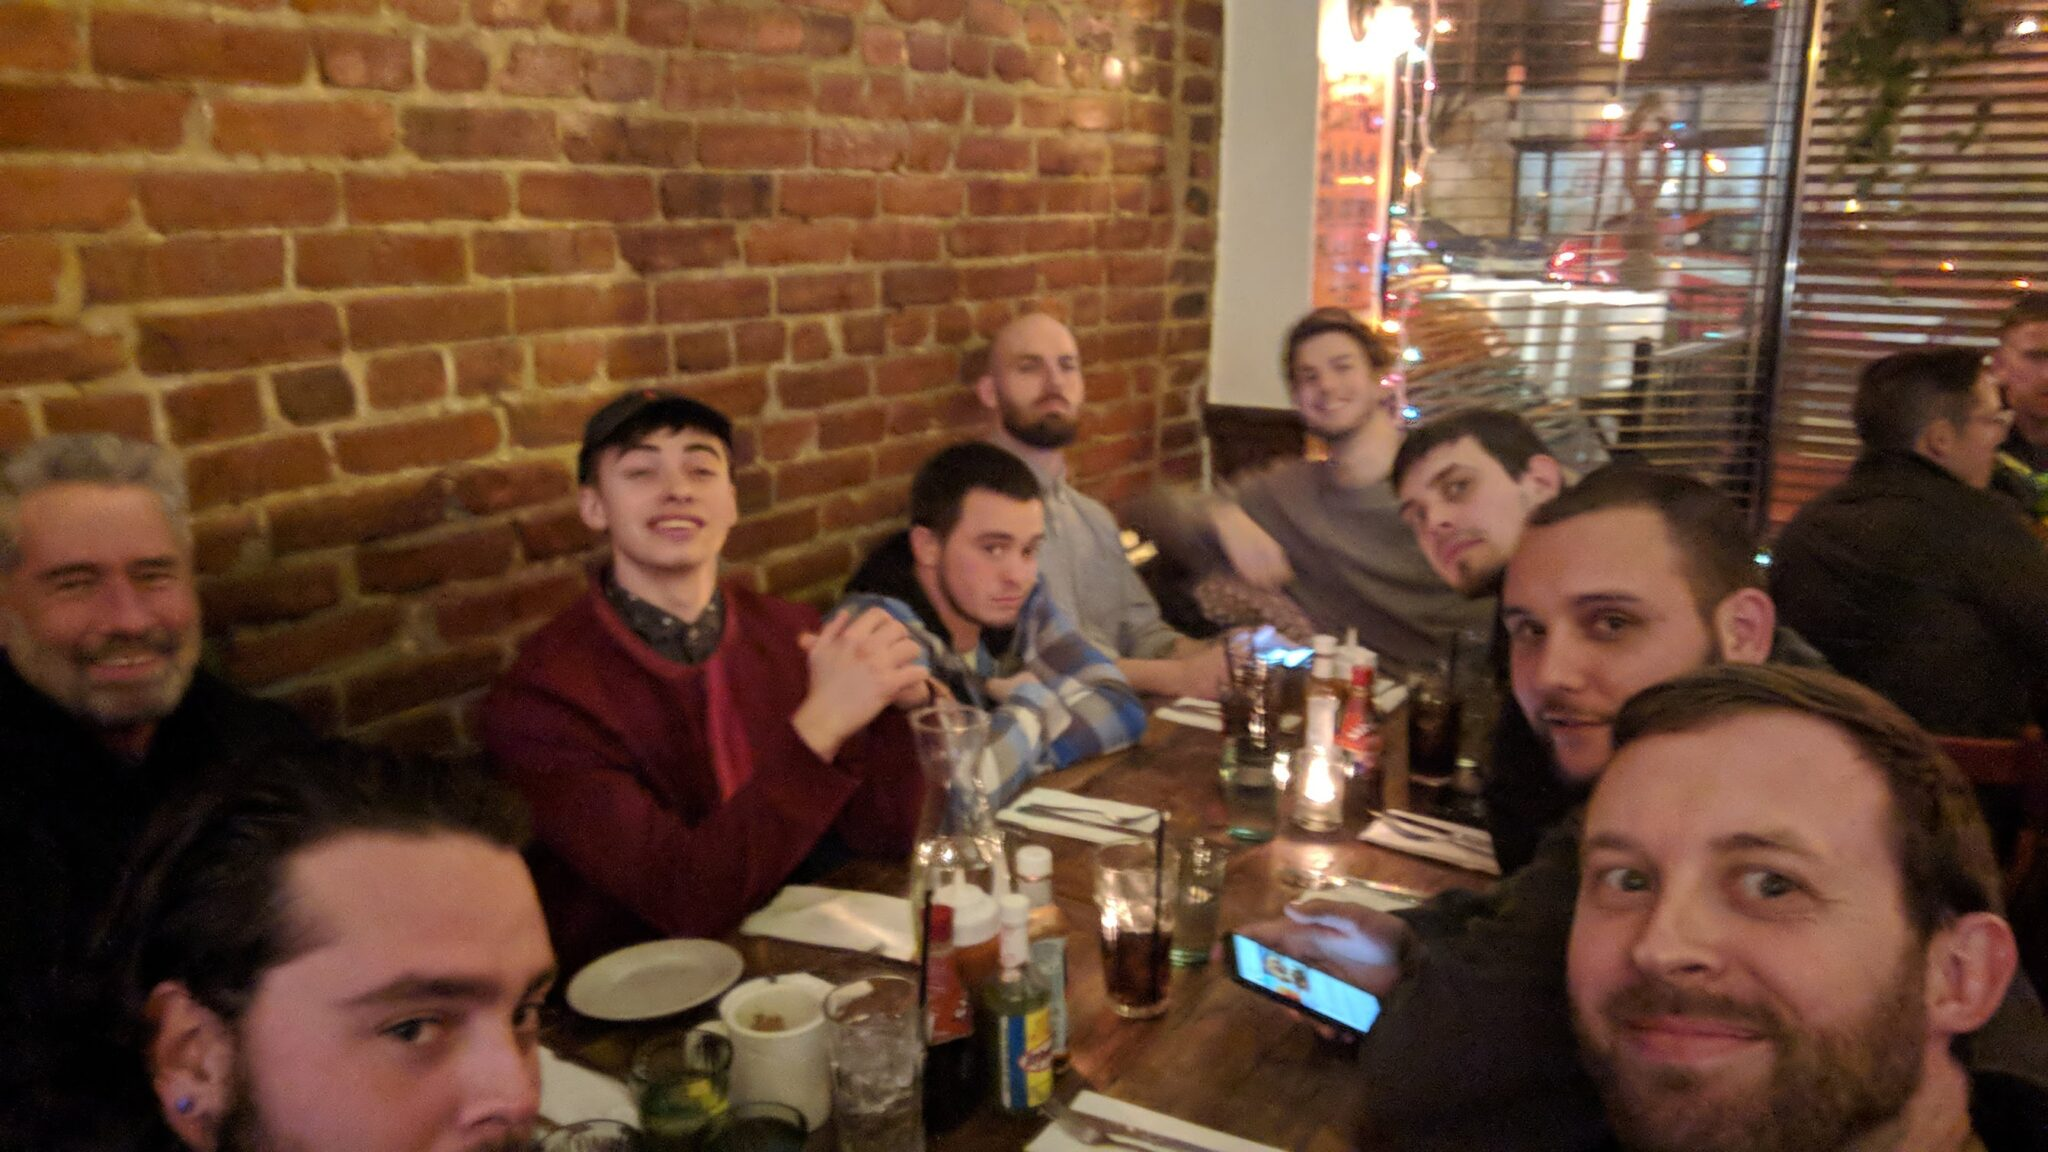 Nine men pose for a group photo seated around a table a restaurant, next to a window and exposed brick wall in the background